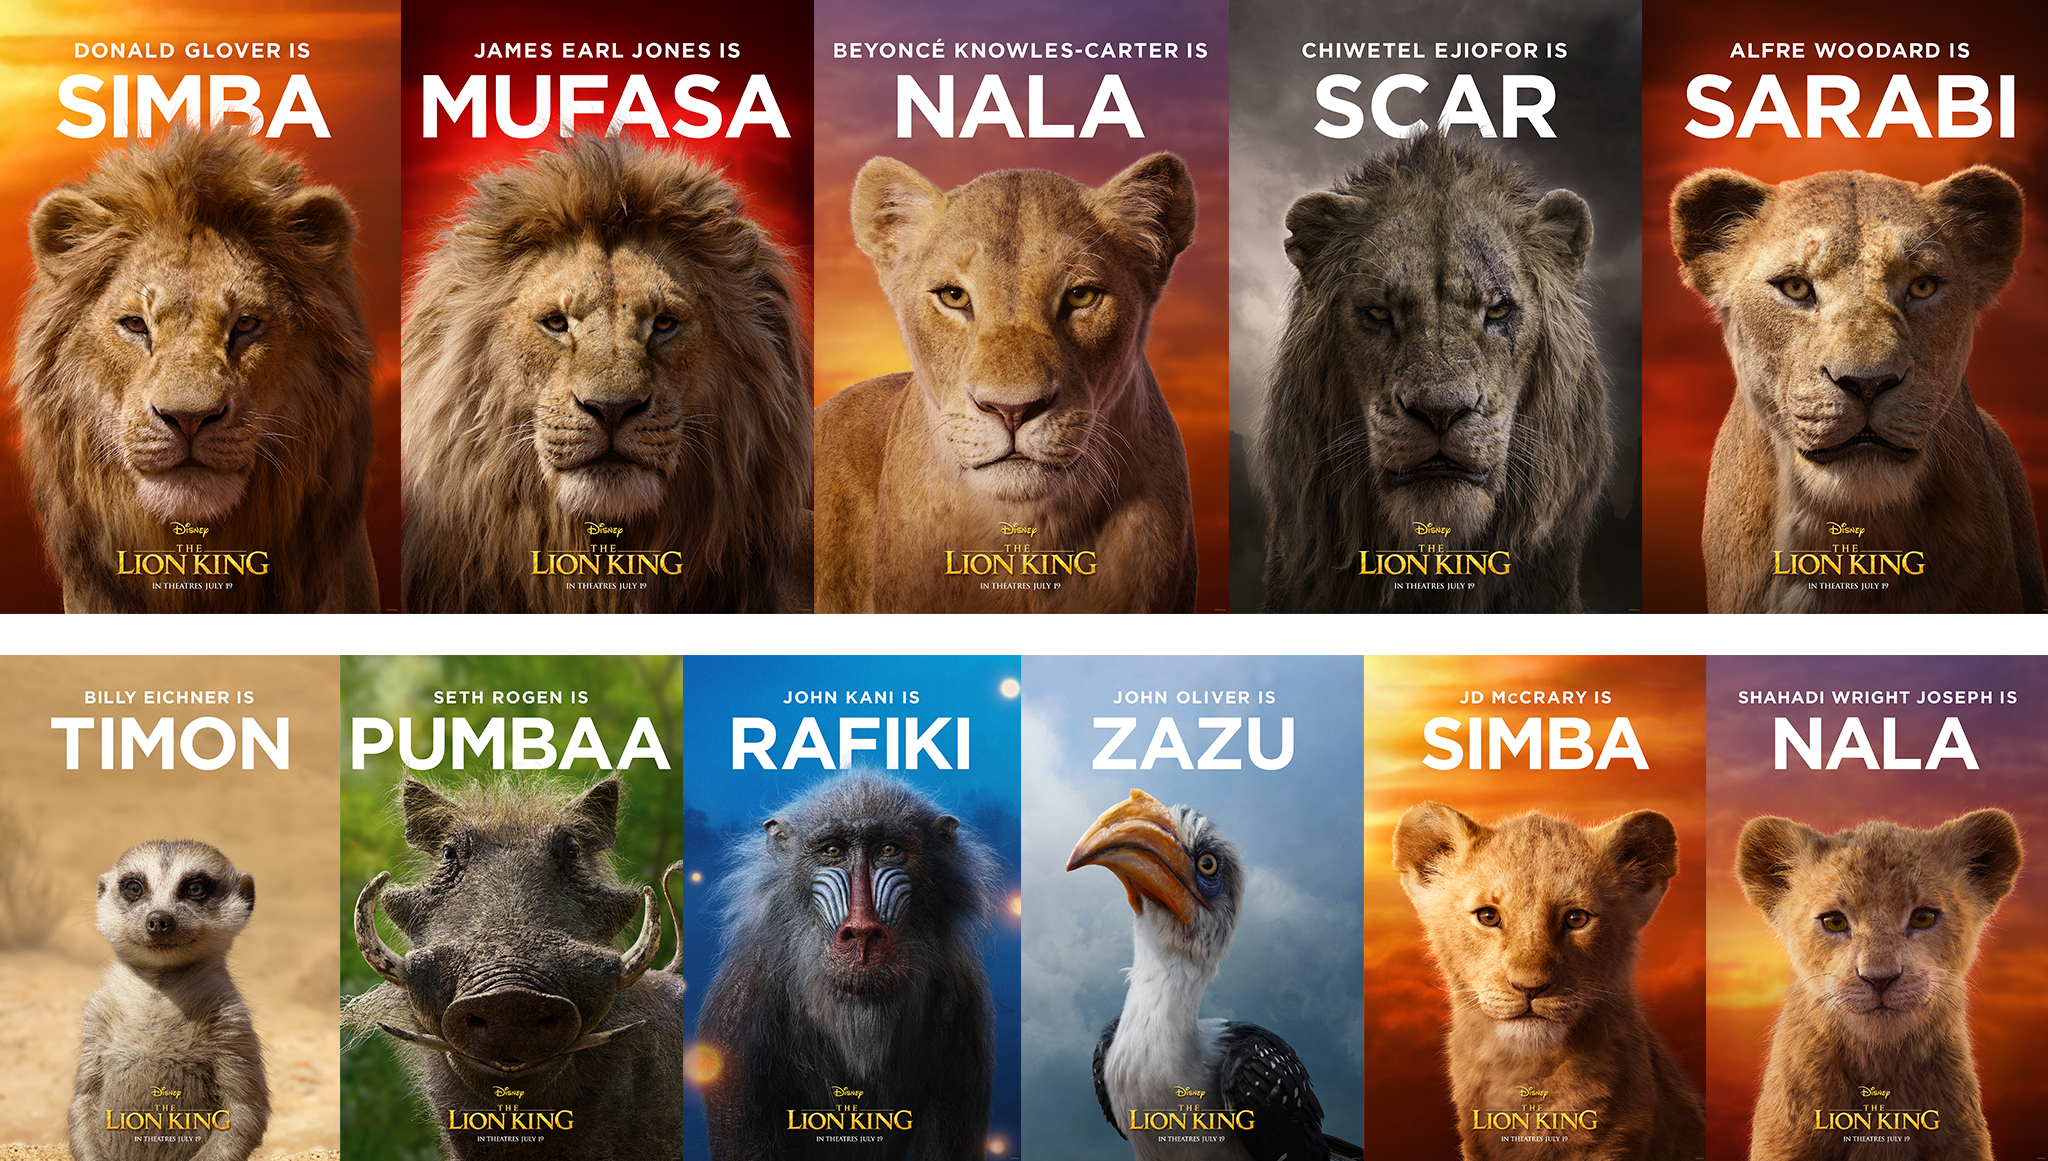 Donald Glover is Simba - James Earl Jones is Mufasa - Beyonce Knowles-Carter is Nala - Chiwetel Ejiofor is Scar - Alfre Woodard is Sarabi - Billy Eichner is Timon - Seth Rogen is Pumbaa - John Kani is Rafiki - John Oliver is Zazu - JD McCrary is Simba - Shahadi Wright Joseph is Nala